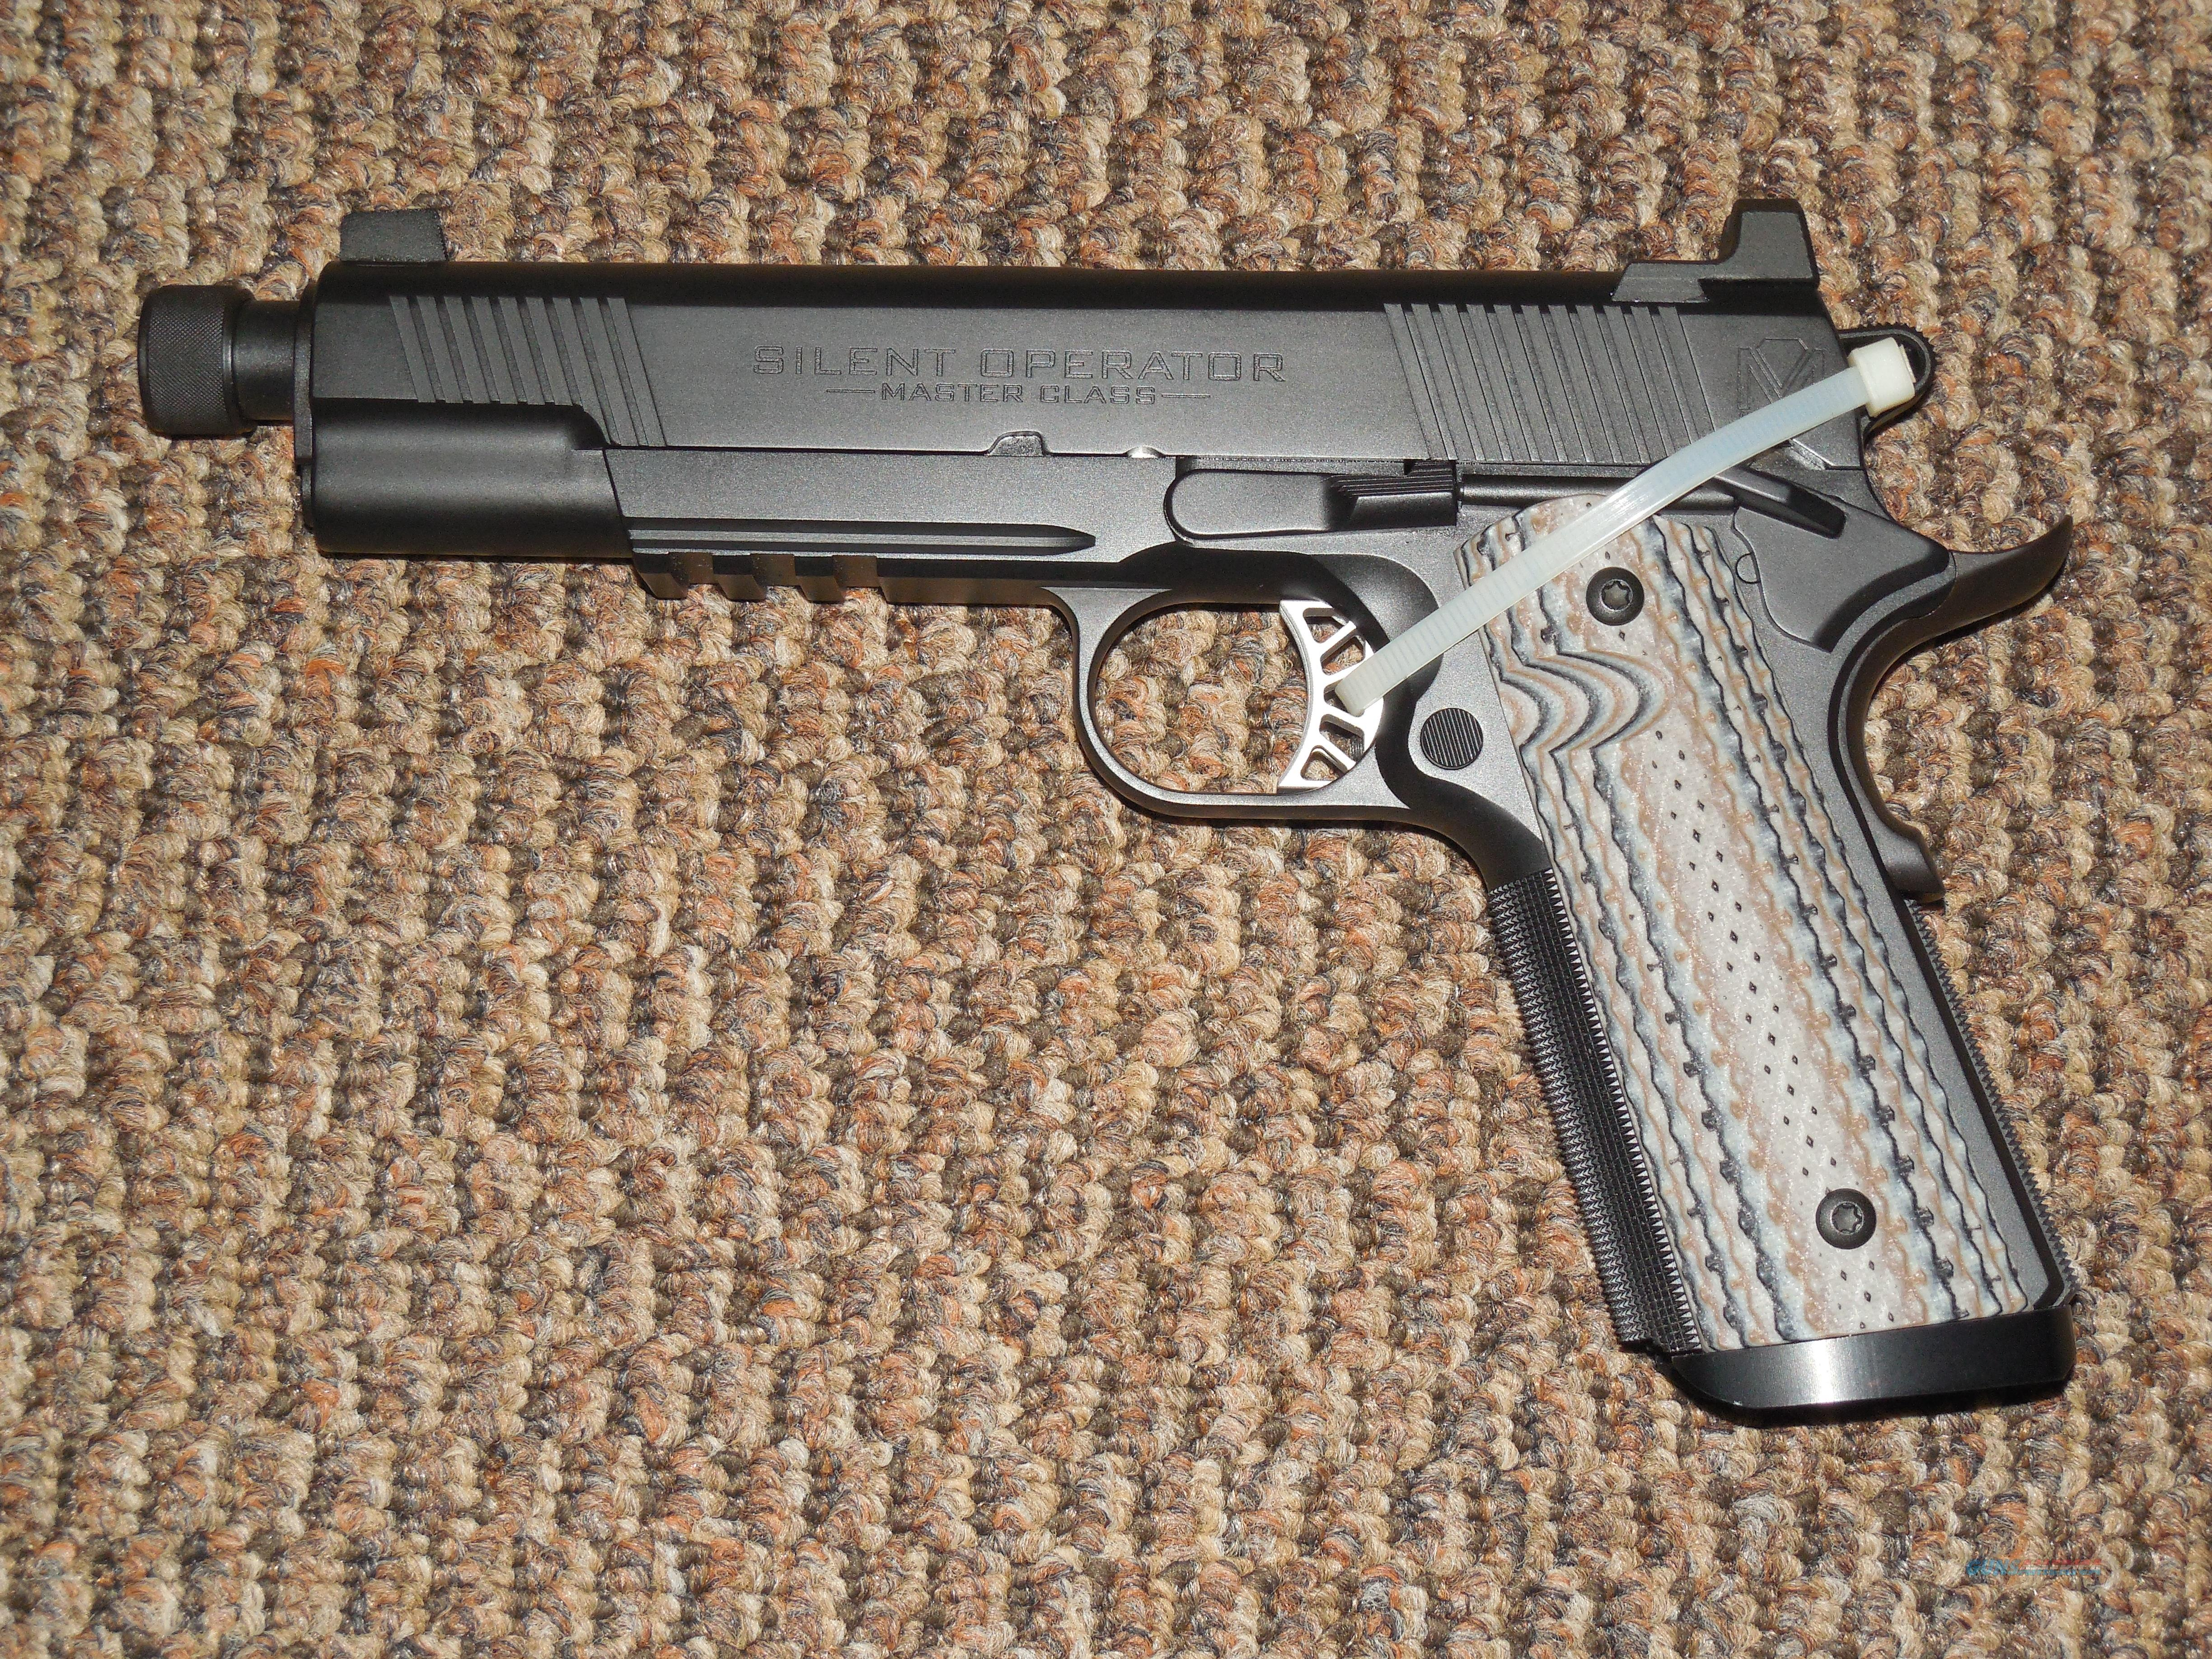 "SPRINGFIELD ARMORY 1911"" MASTER CLASS SILENT OPERATOR"" .45 ACP  Guns > Pistols > Springfield Armory Pistols > 1911 Type"